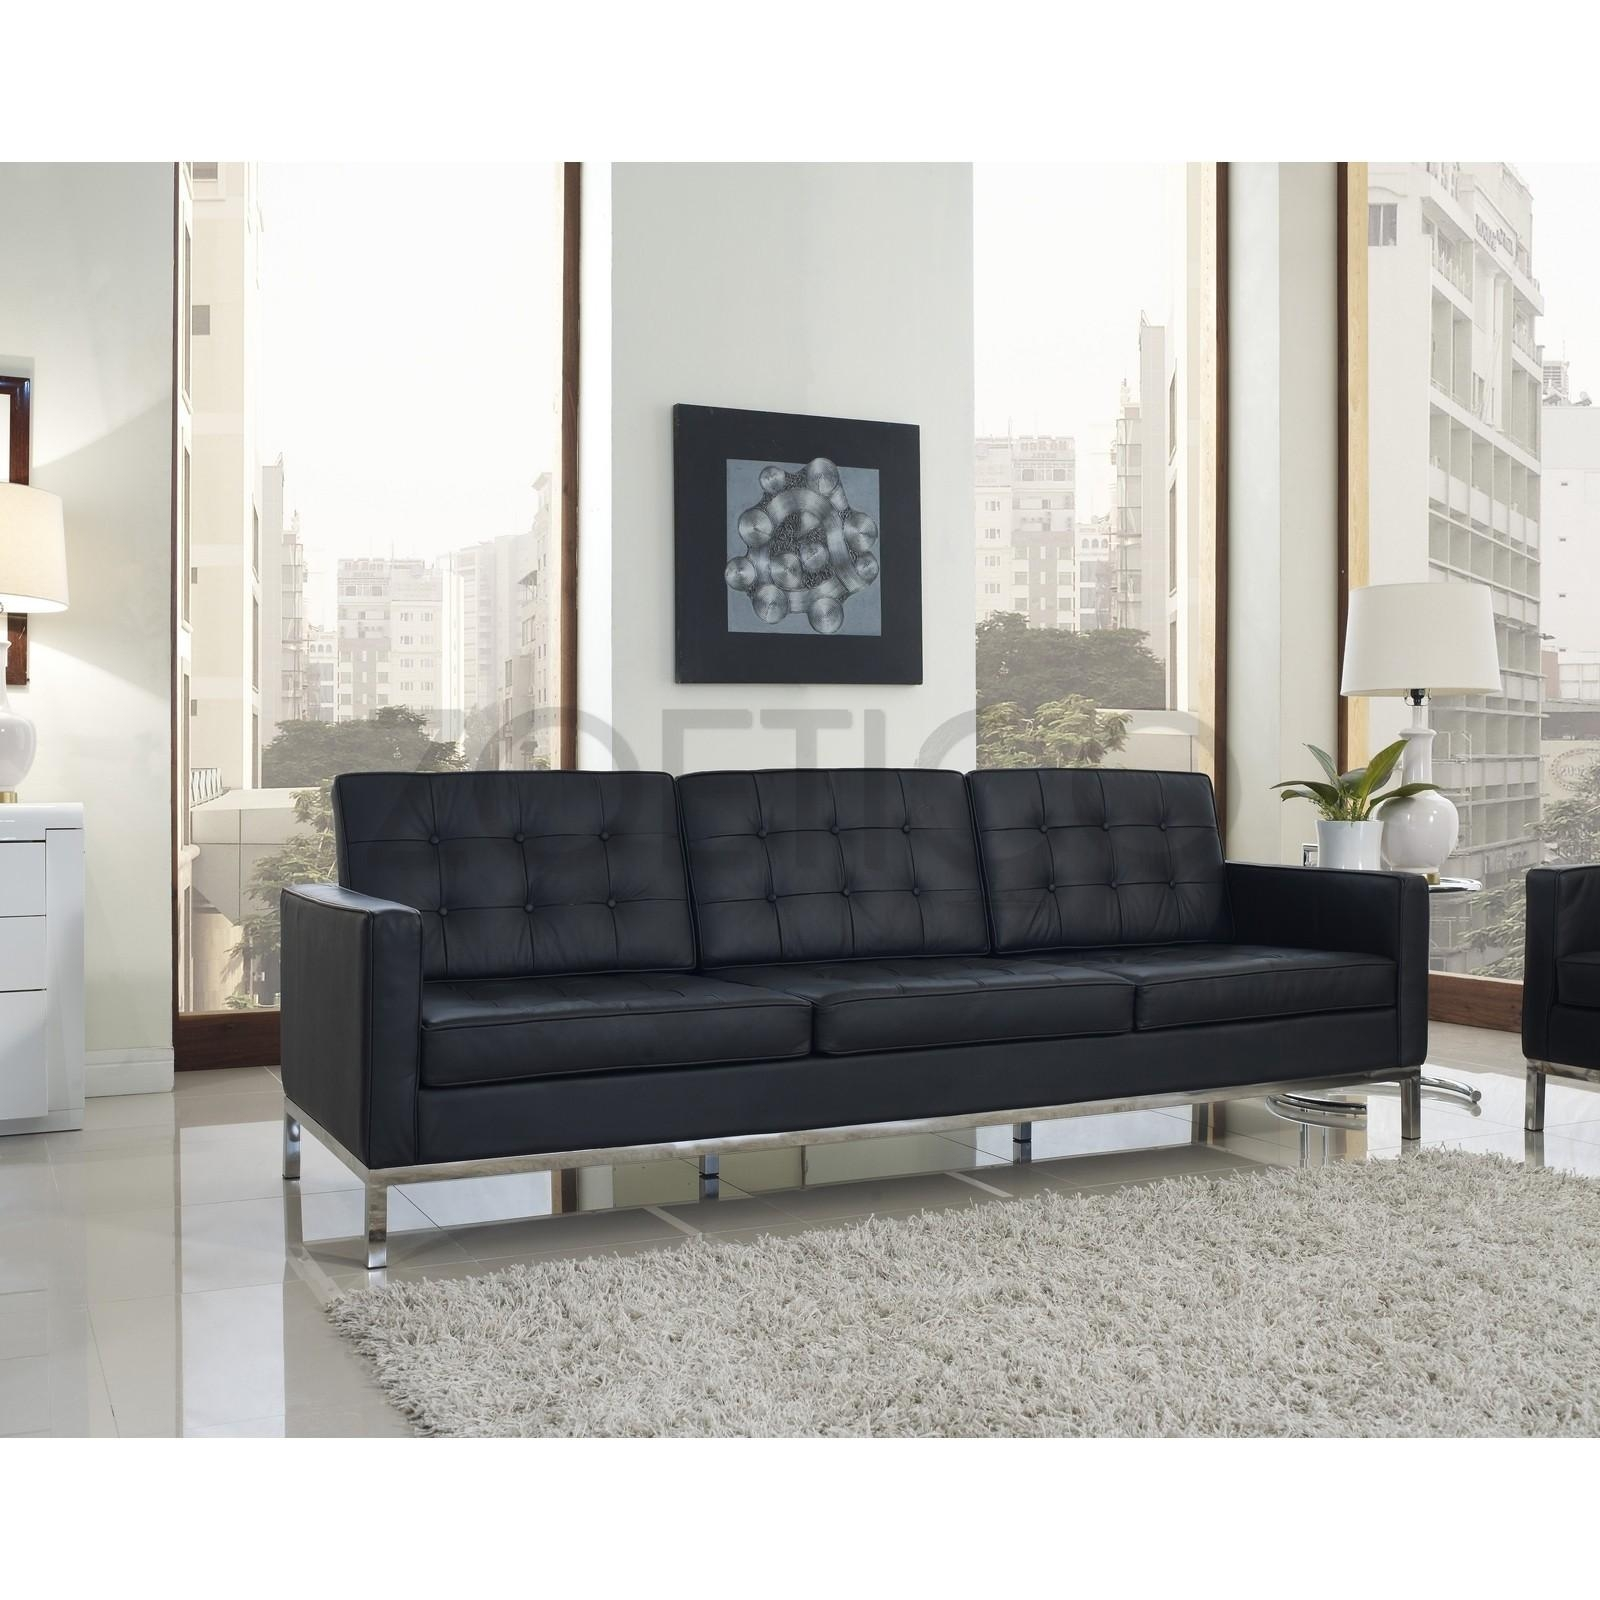 Florence Knoll Style Sofa In Leather (Multiple Colors/materials Intended For Florence Knoll Style Sofas (View 3 of 20)